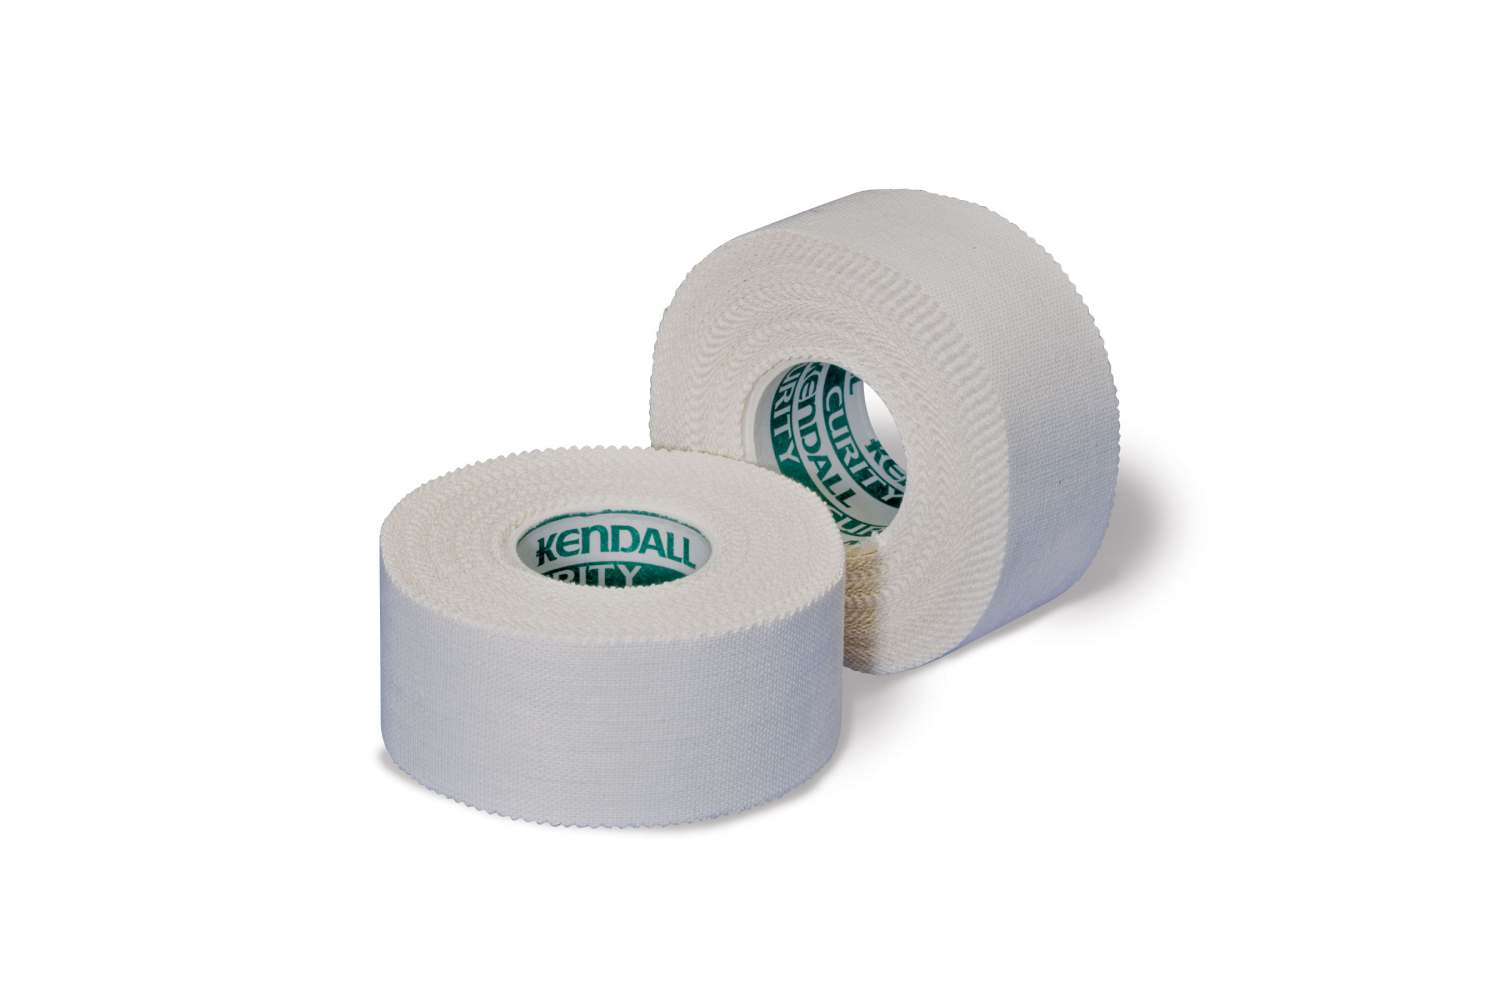 Kendall Curity Standard Porous Tape - Standrd, Wht, 1/2